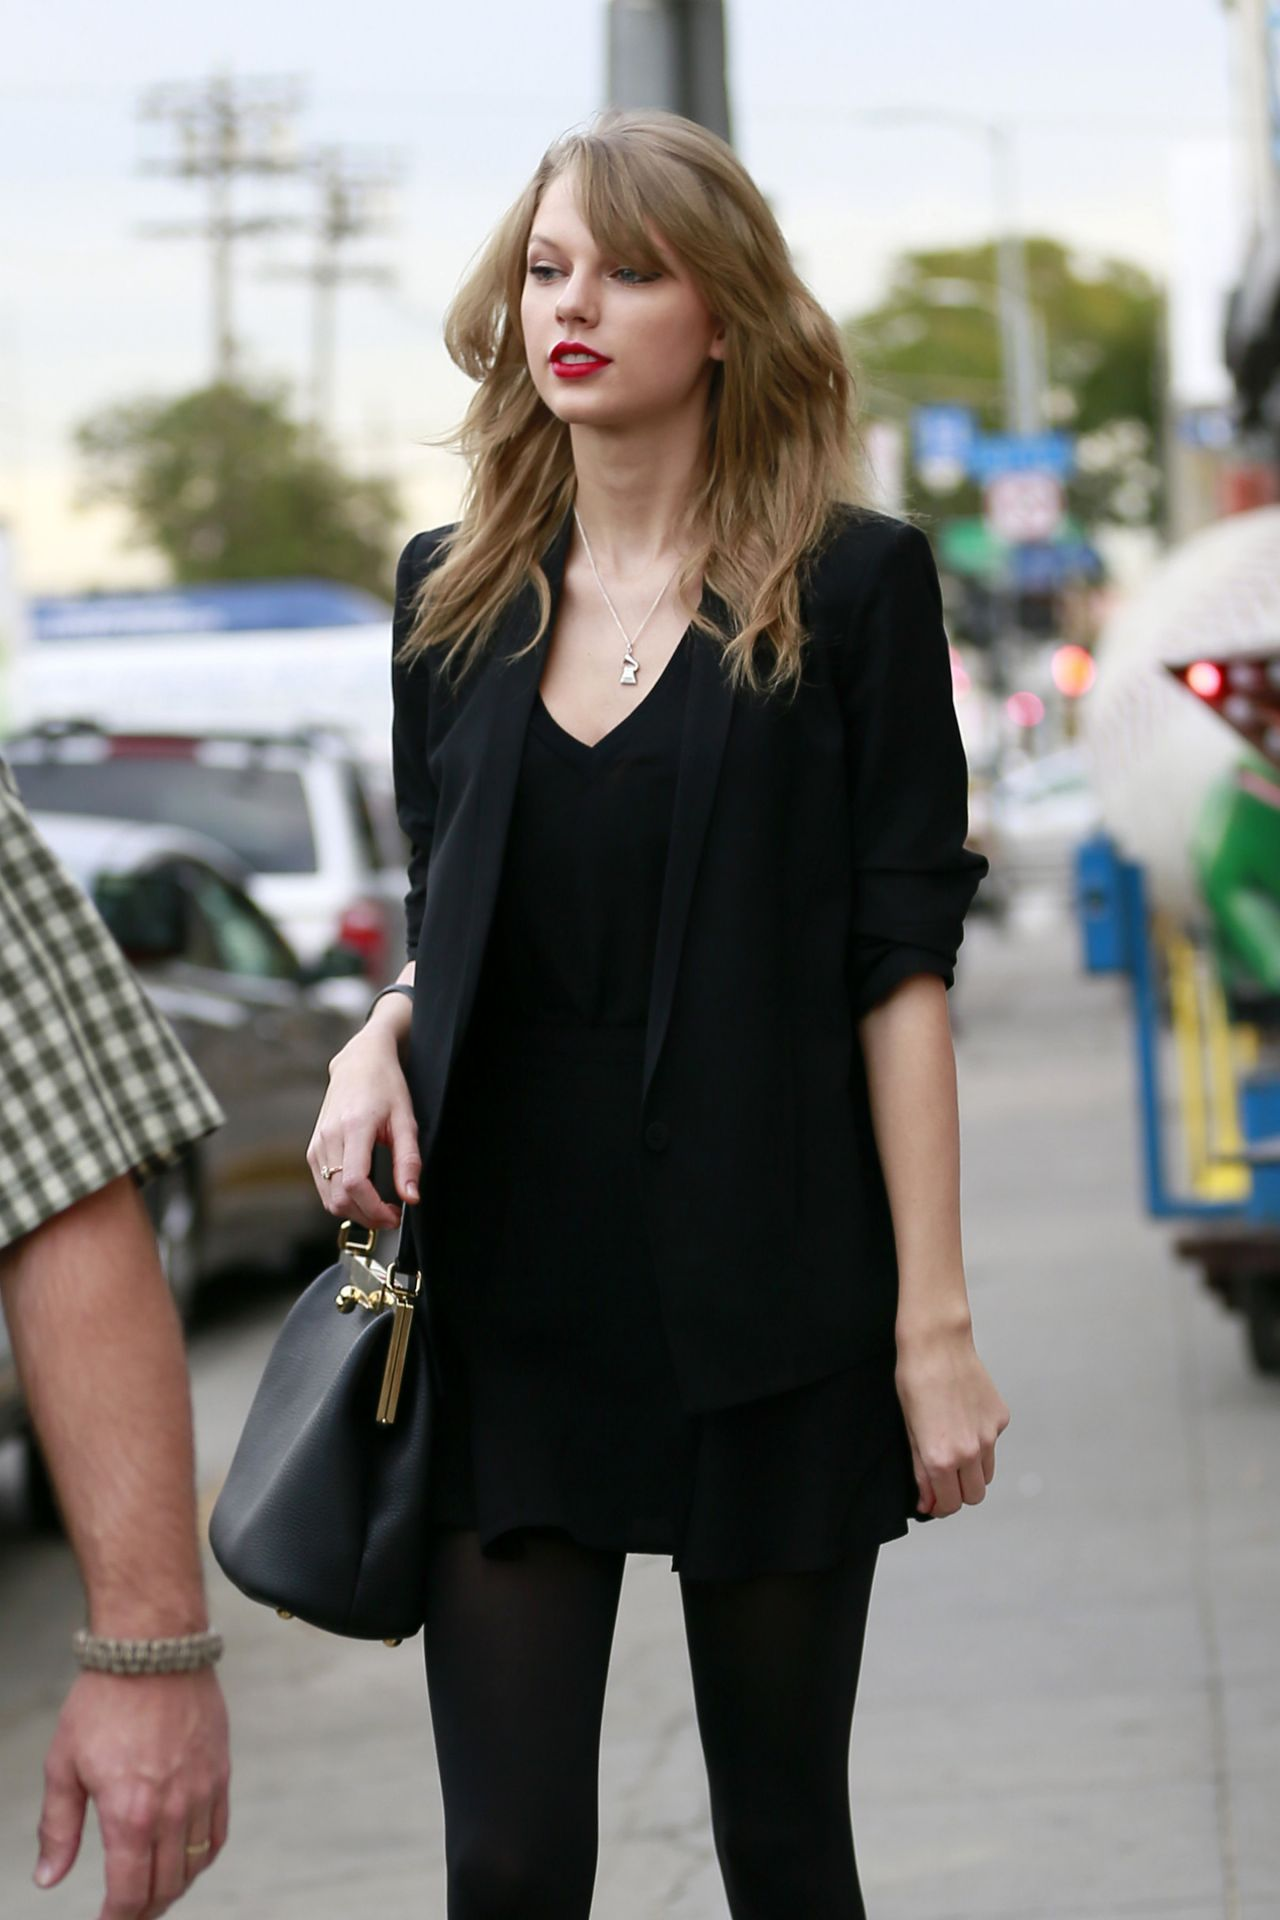 Taylor Swift Street Style - at an Antique Shop in Los Angeles, January 2014